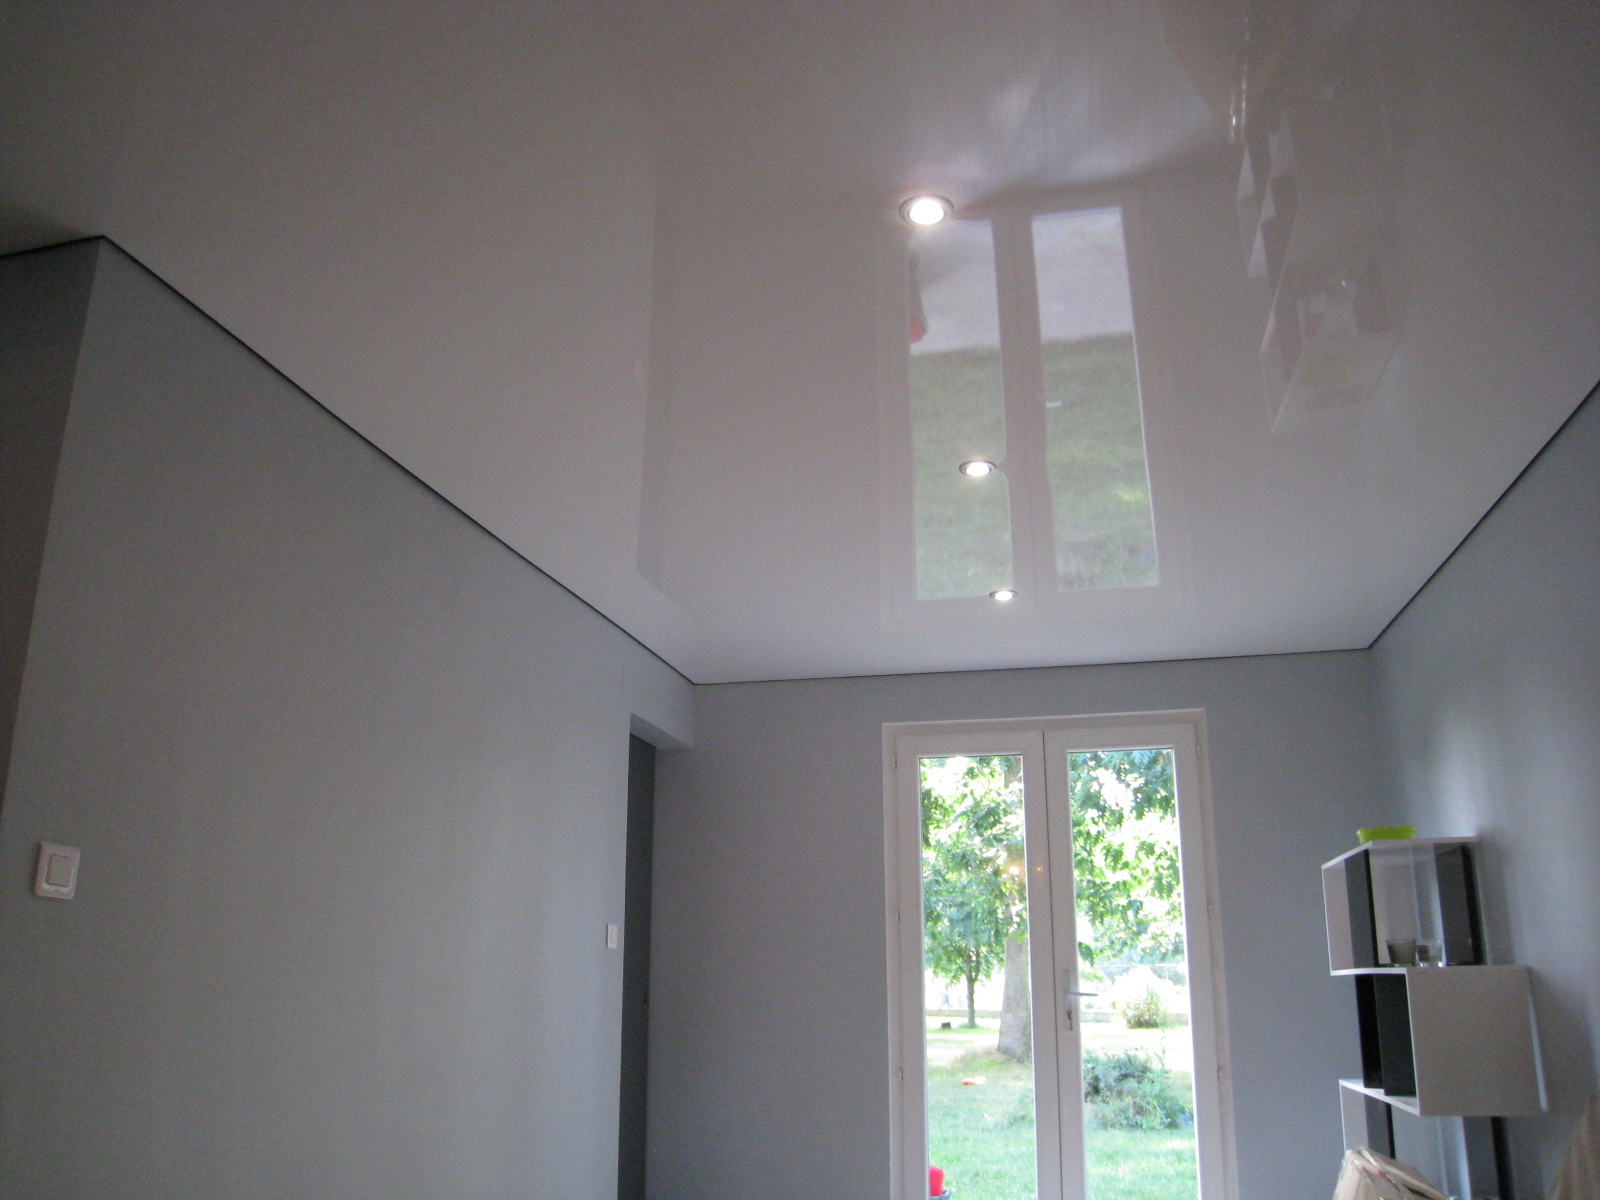 D coration r novation plafond tendu laqu by steeve mieulet for Renovation plafond